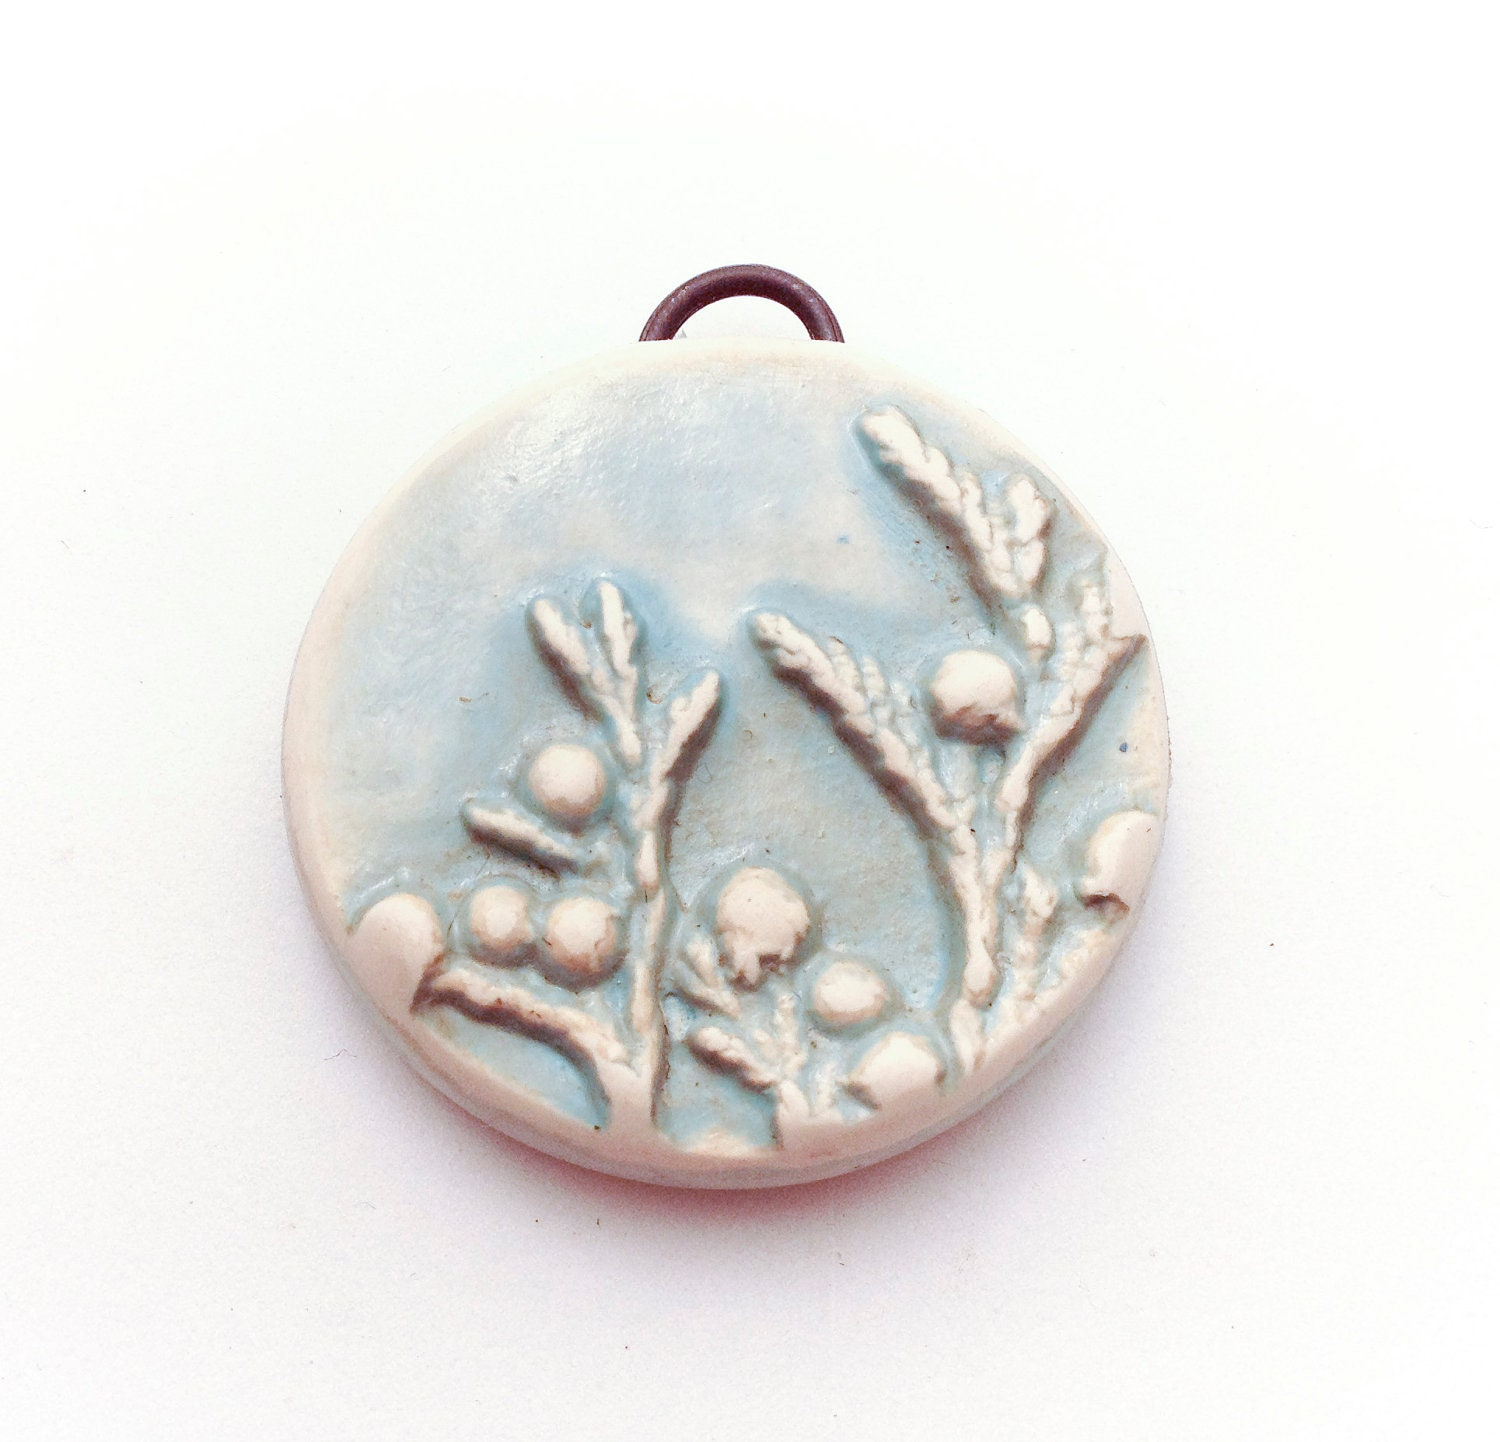 Cedar Branch Antique Blue Polymer Clay Pendant Necklace - Distlefunk2